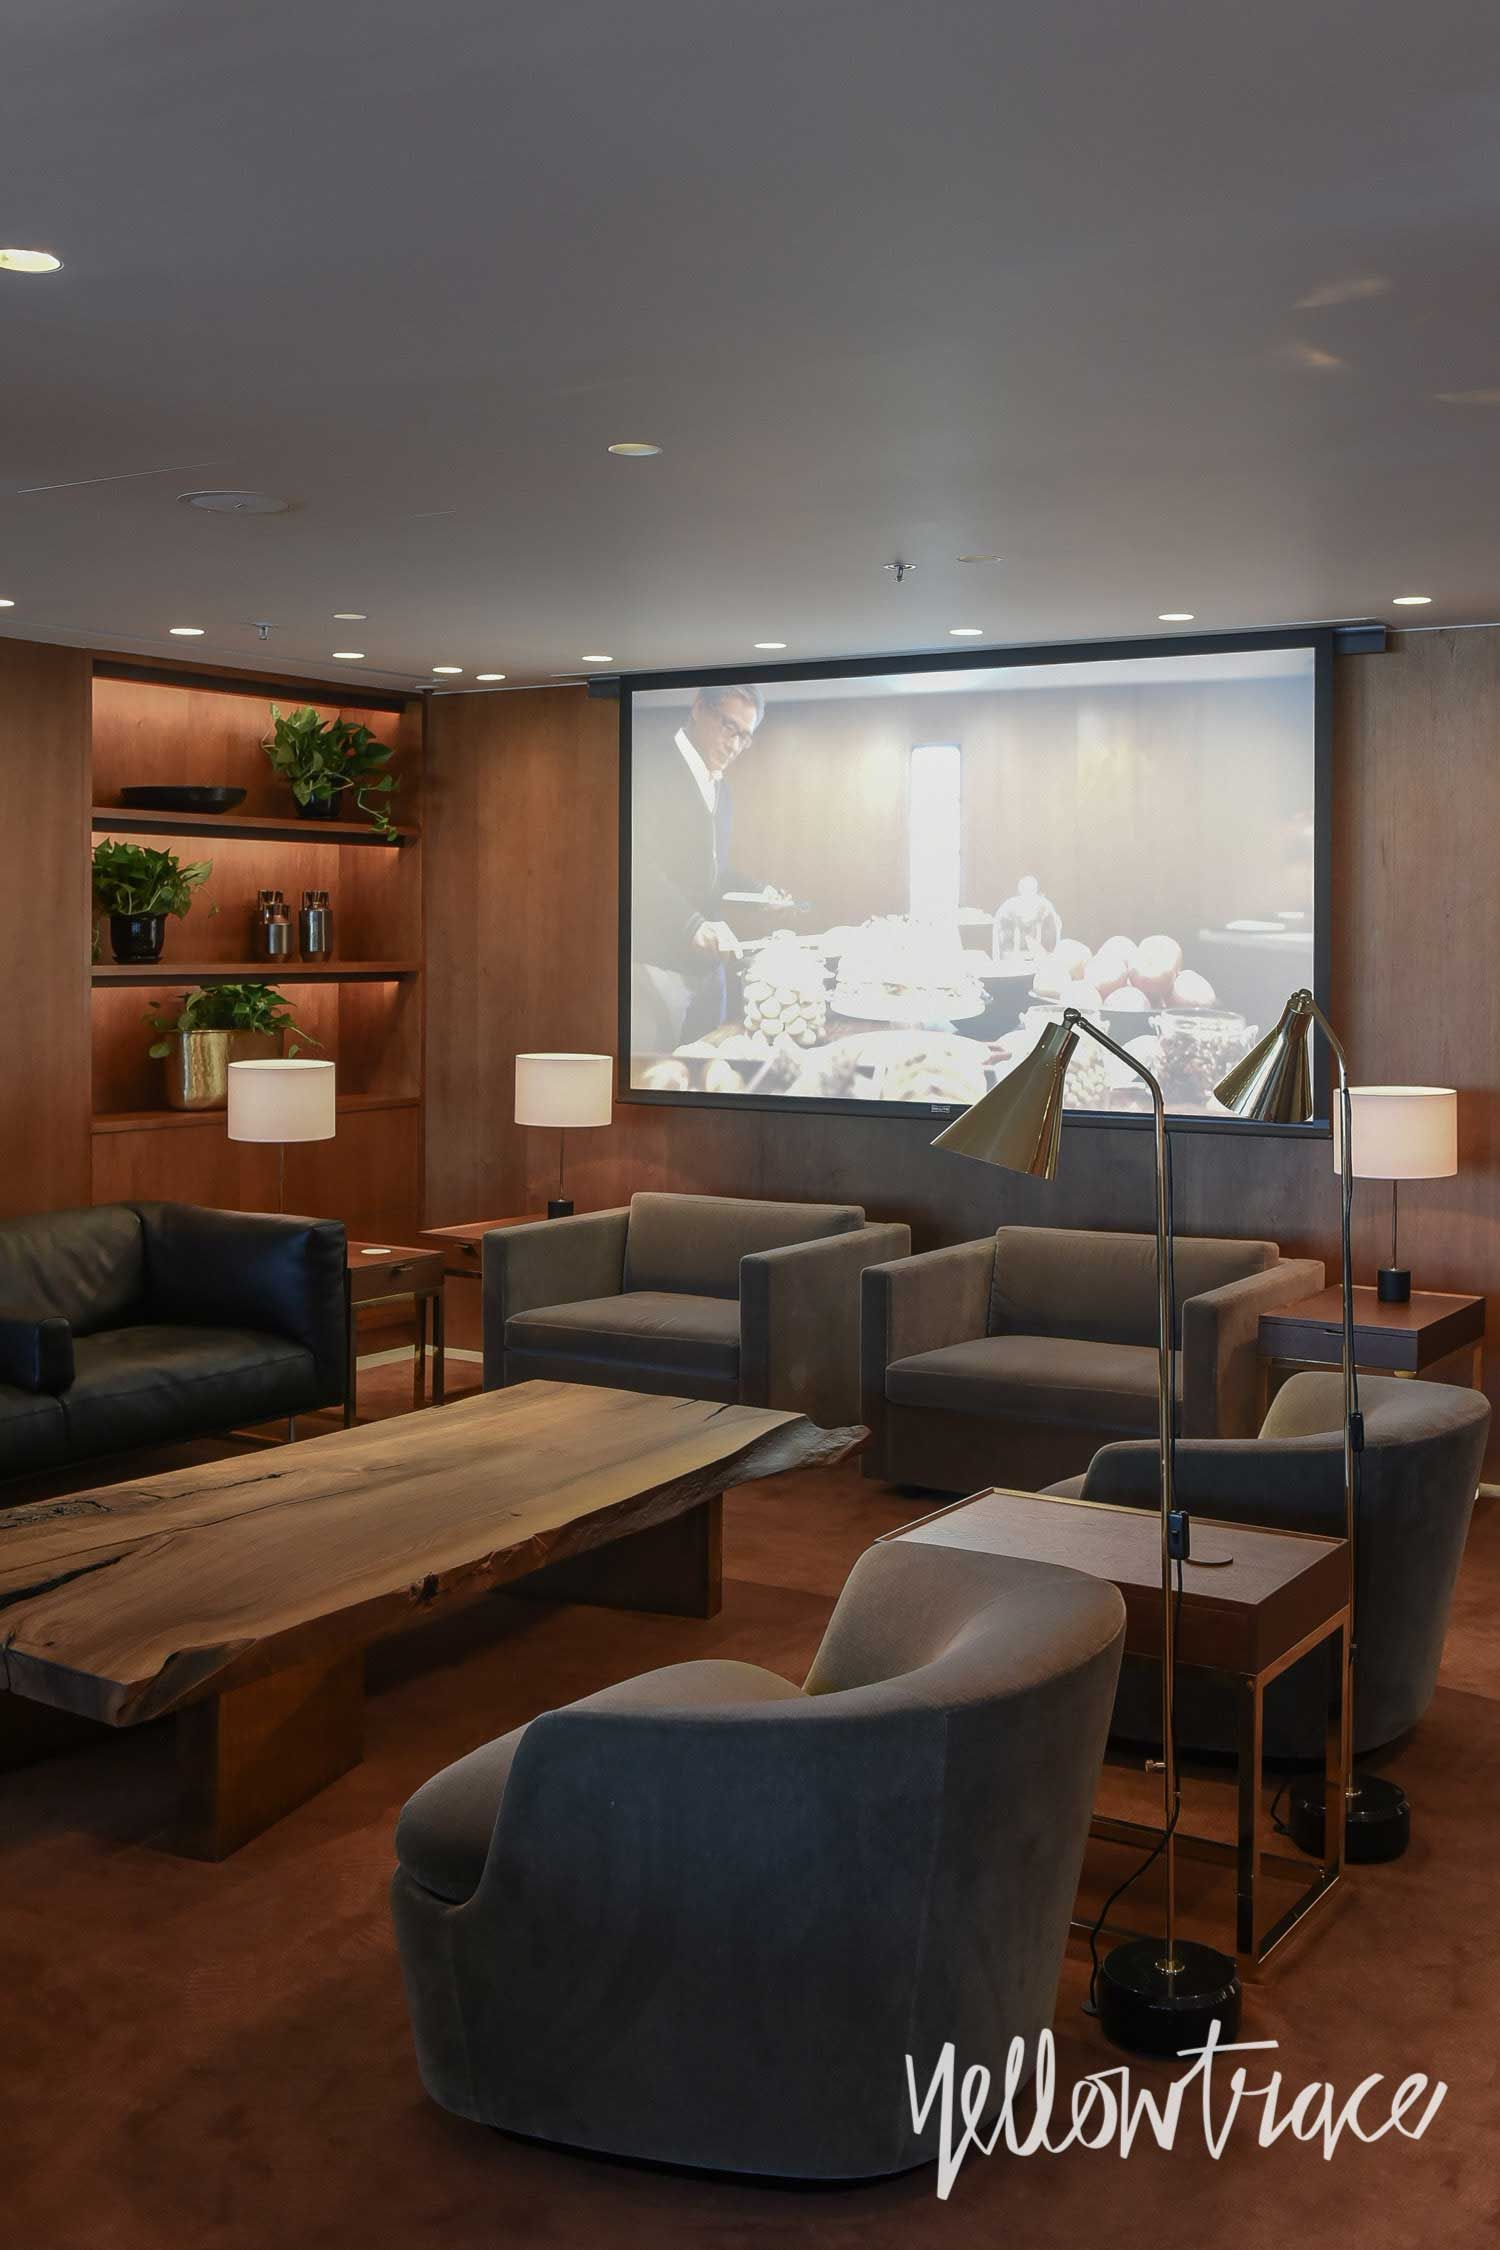 Cathay Pacific S The Pier First Class Lounge In Hong Kong With